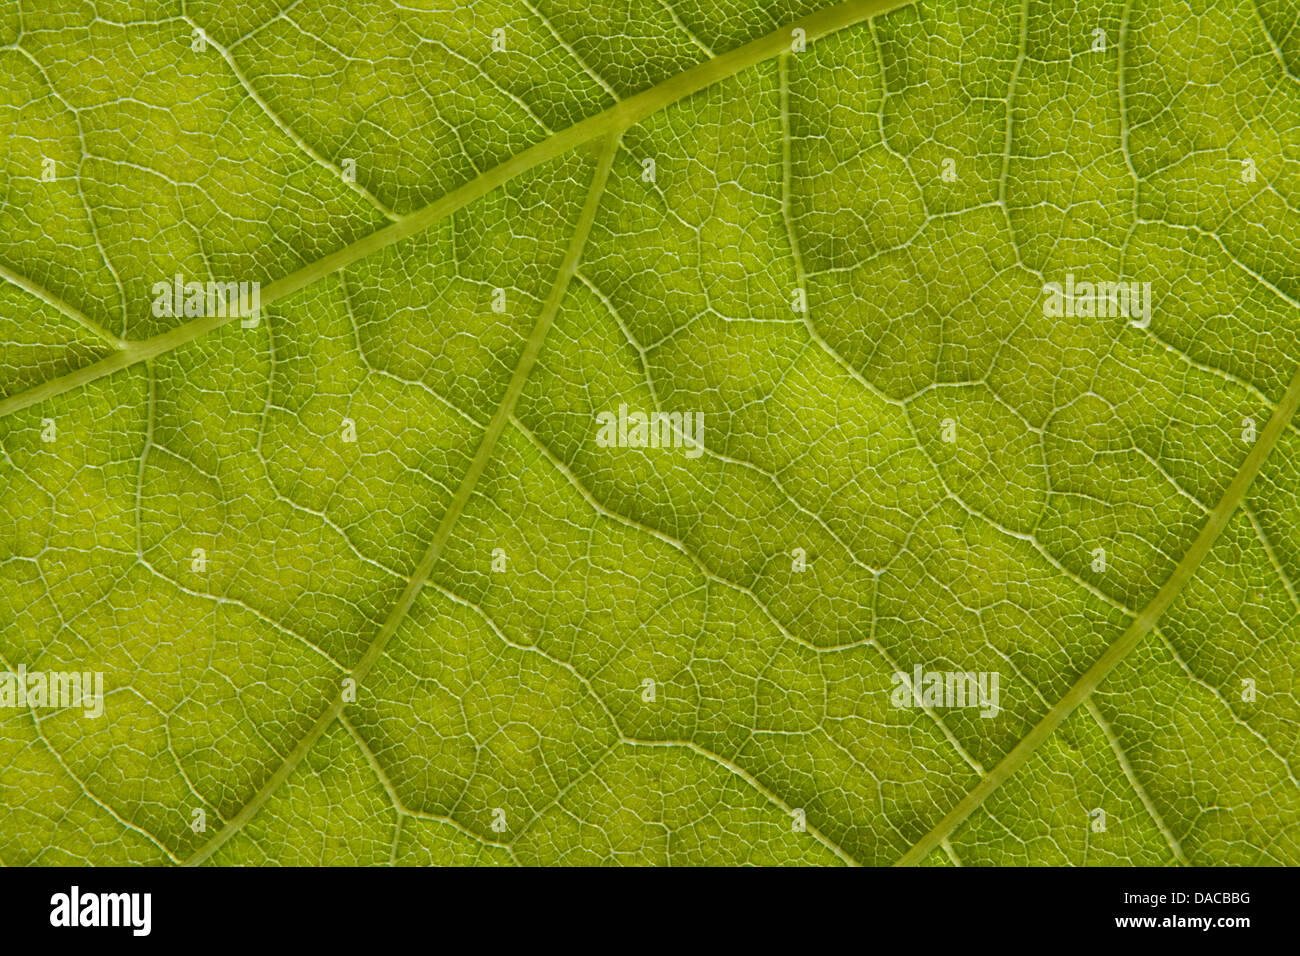 Extreme Macro of Leaf detail great background for botany or scientific biology papers - Stock Image